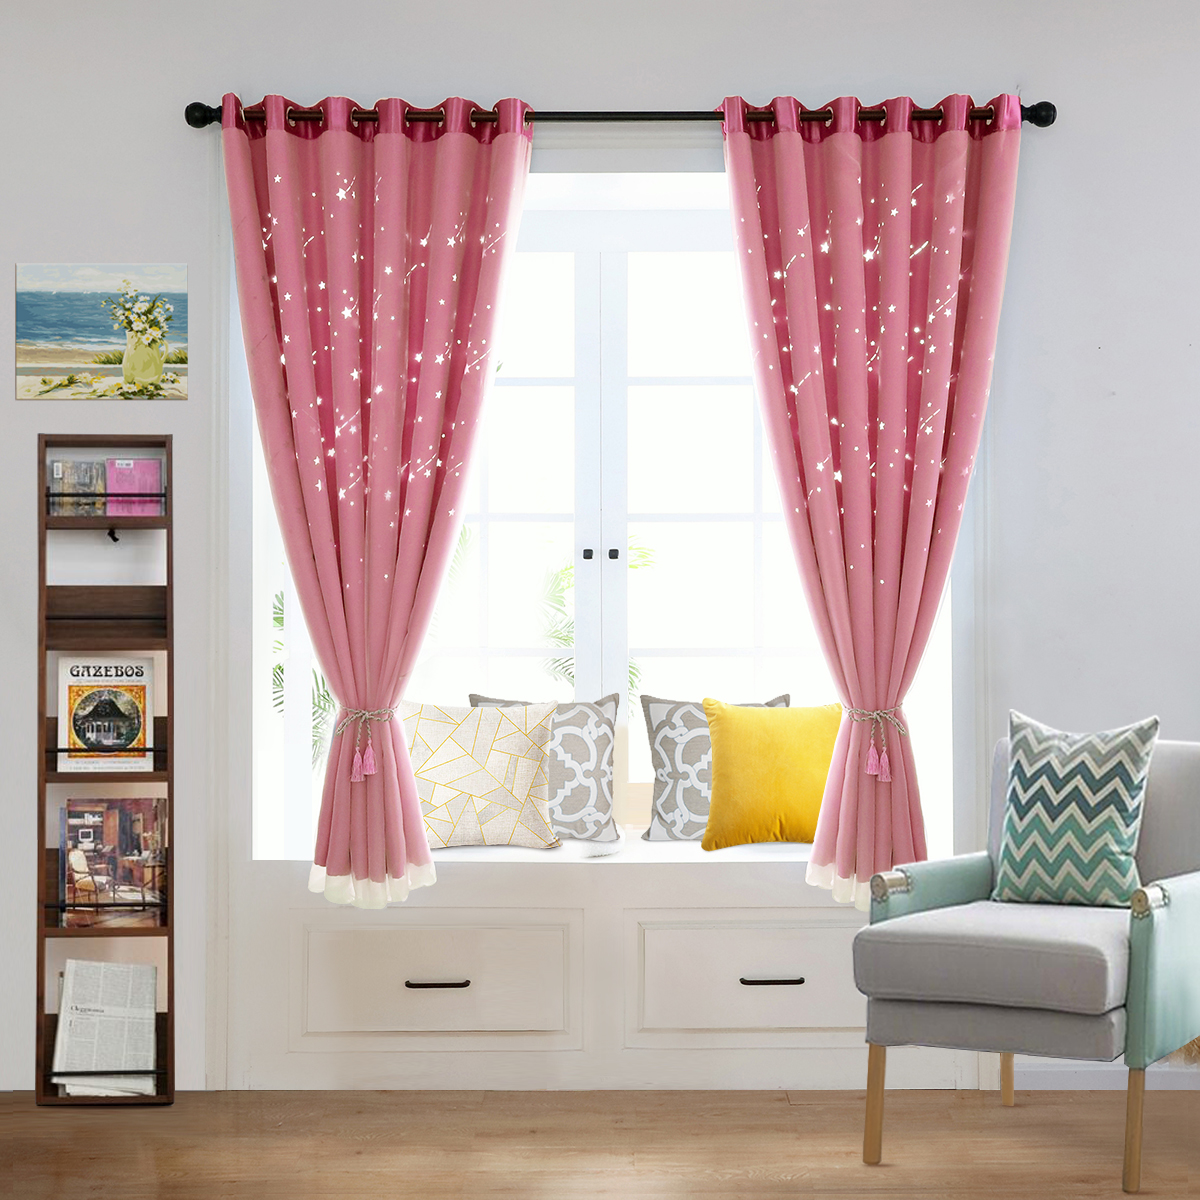 ring top curtain  mesh thermal blockout curtain for kids